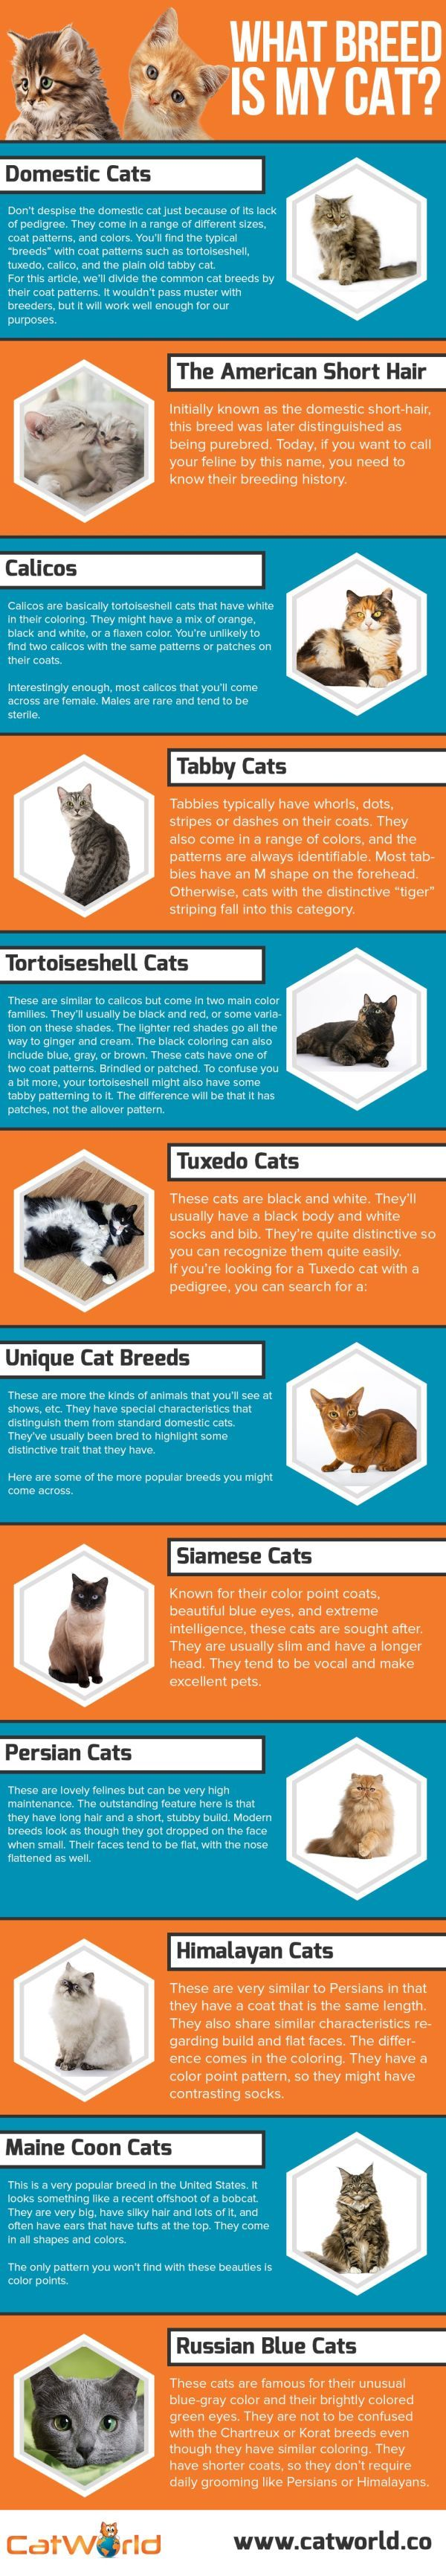 List Of Popular Cat Breeds What Breed Is Your Cat Popular Cat Breeds Common Cat Breeds Cat Breeds